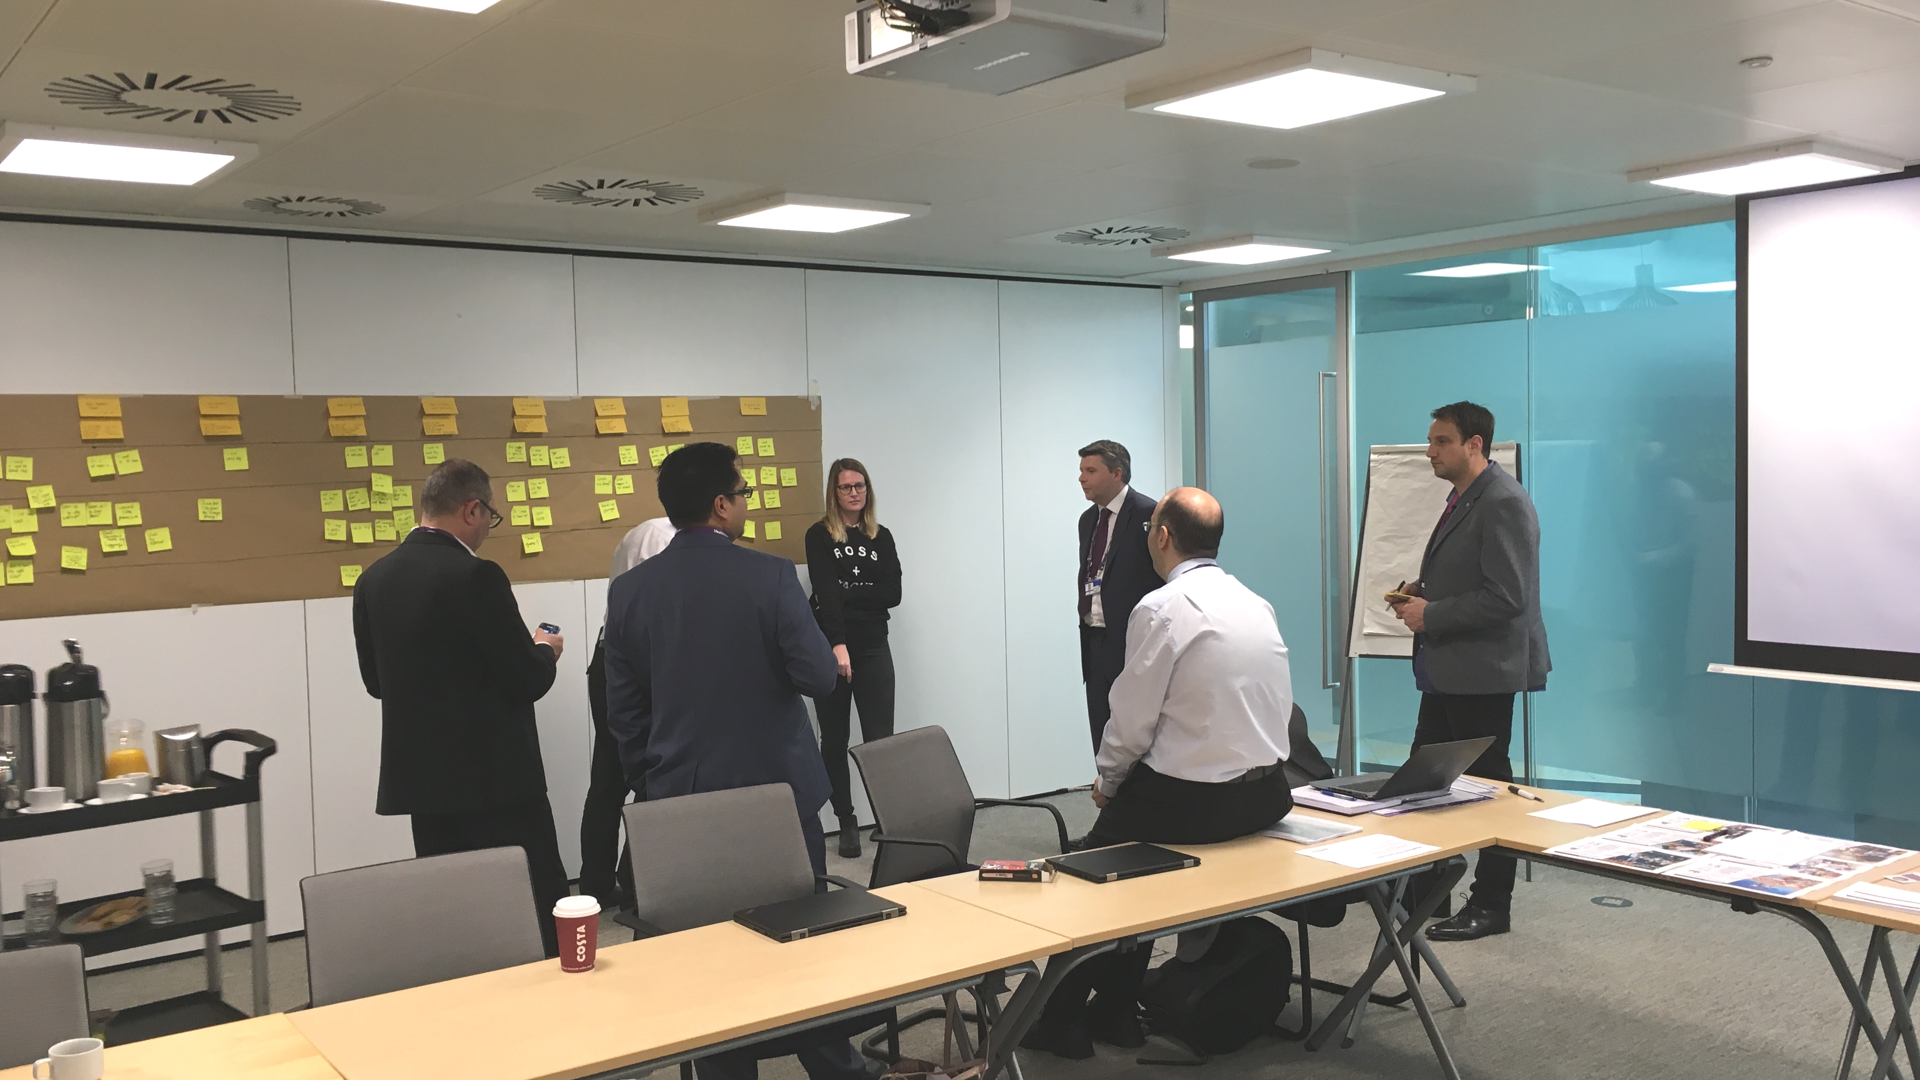 Customer journey workshop together with the client